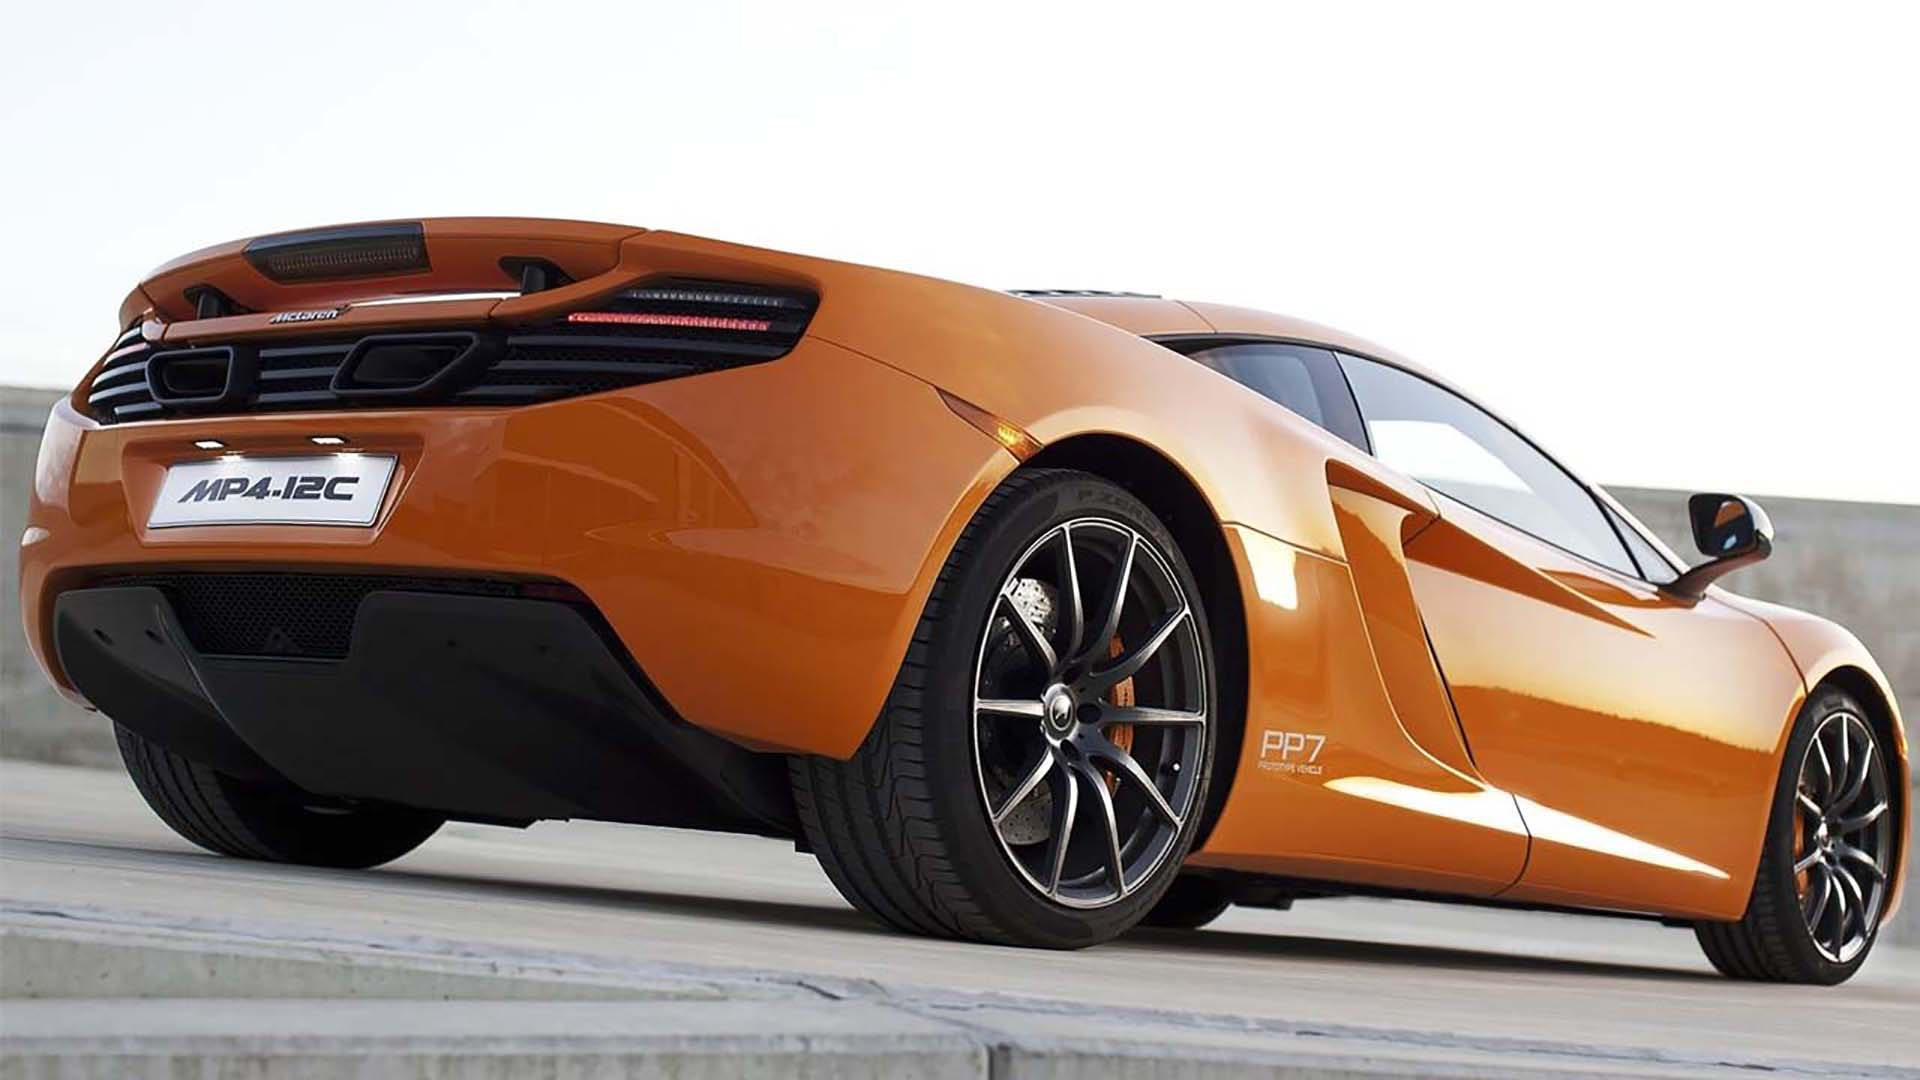 Mclaren MP4-12C Body Design & Engineering by ADP Special Projects